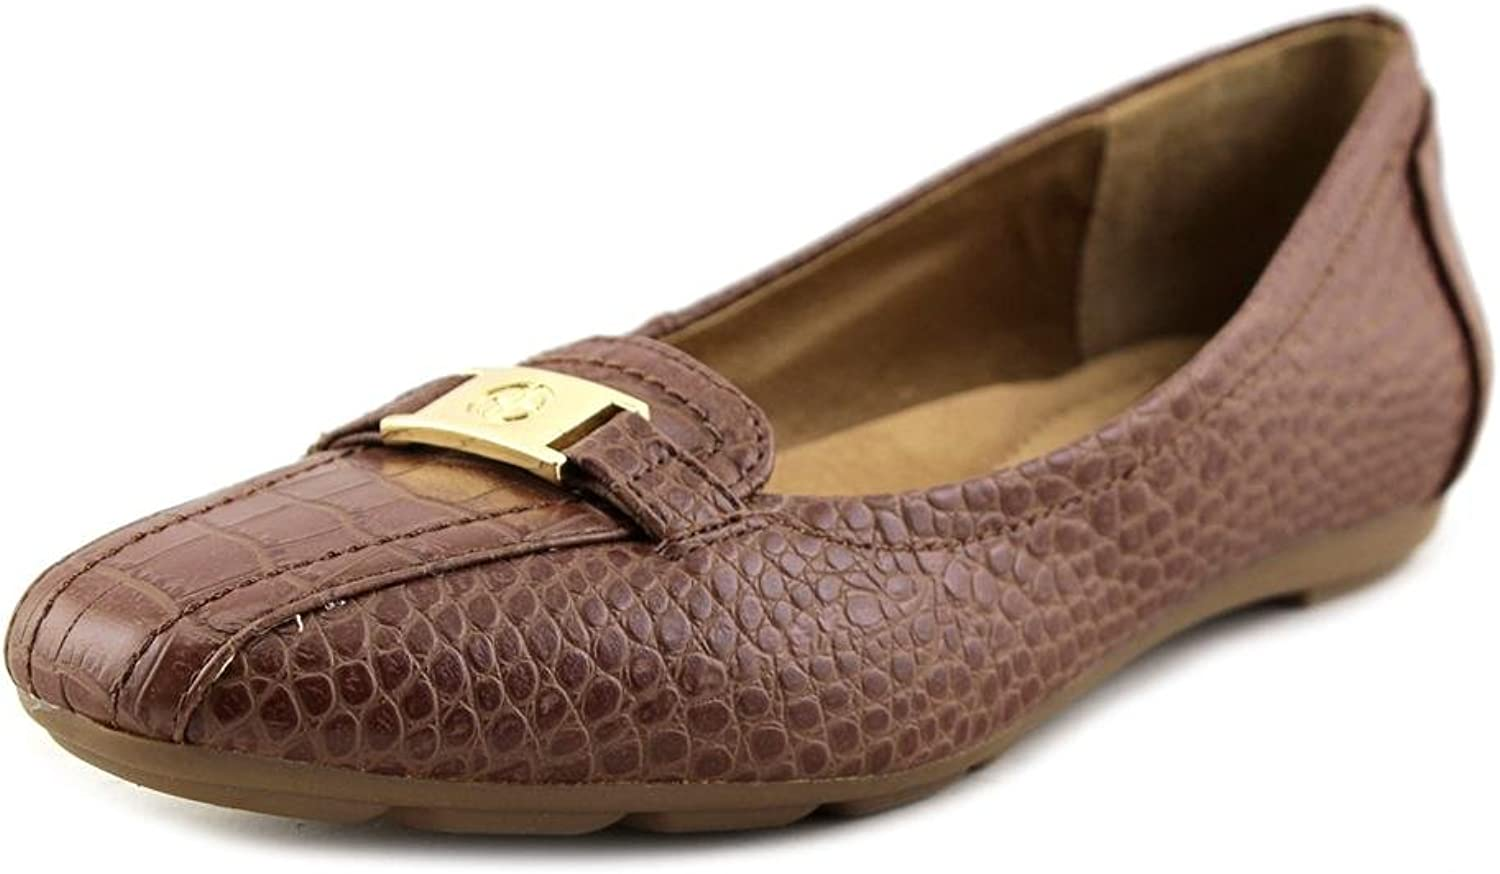 Giani Bernini Womens Jileese Square Toe Loafers